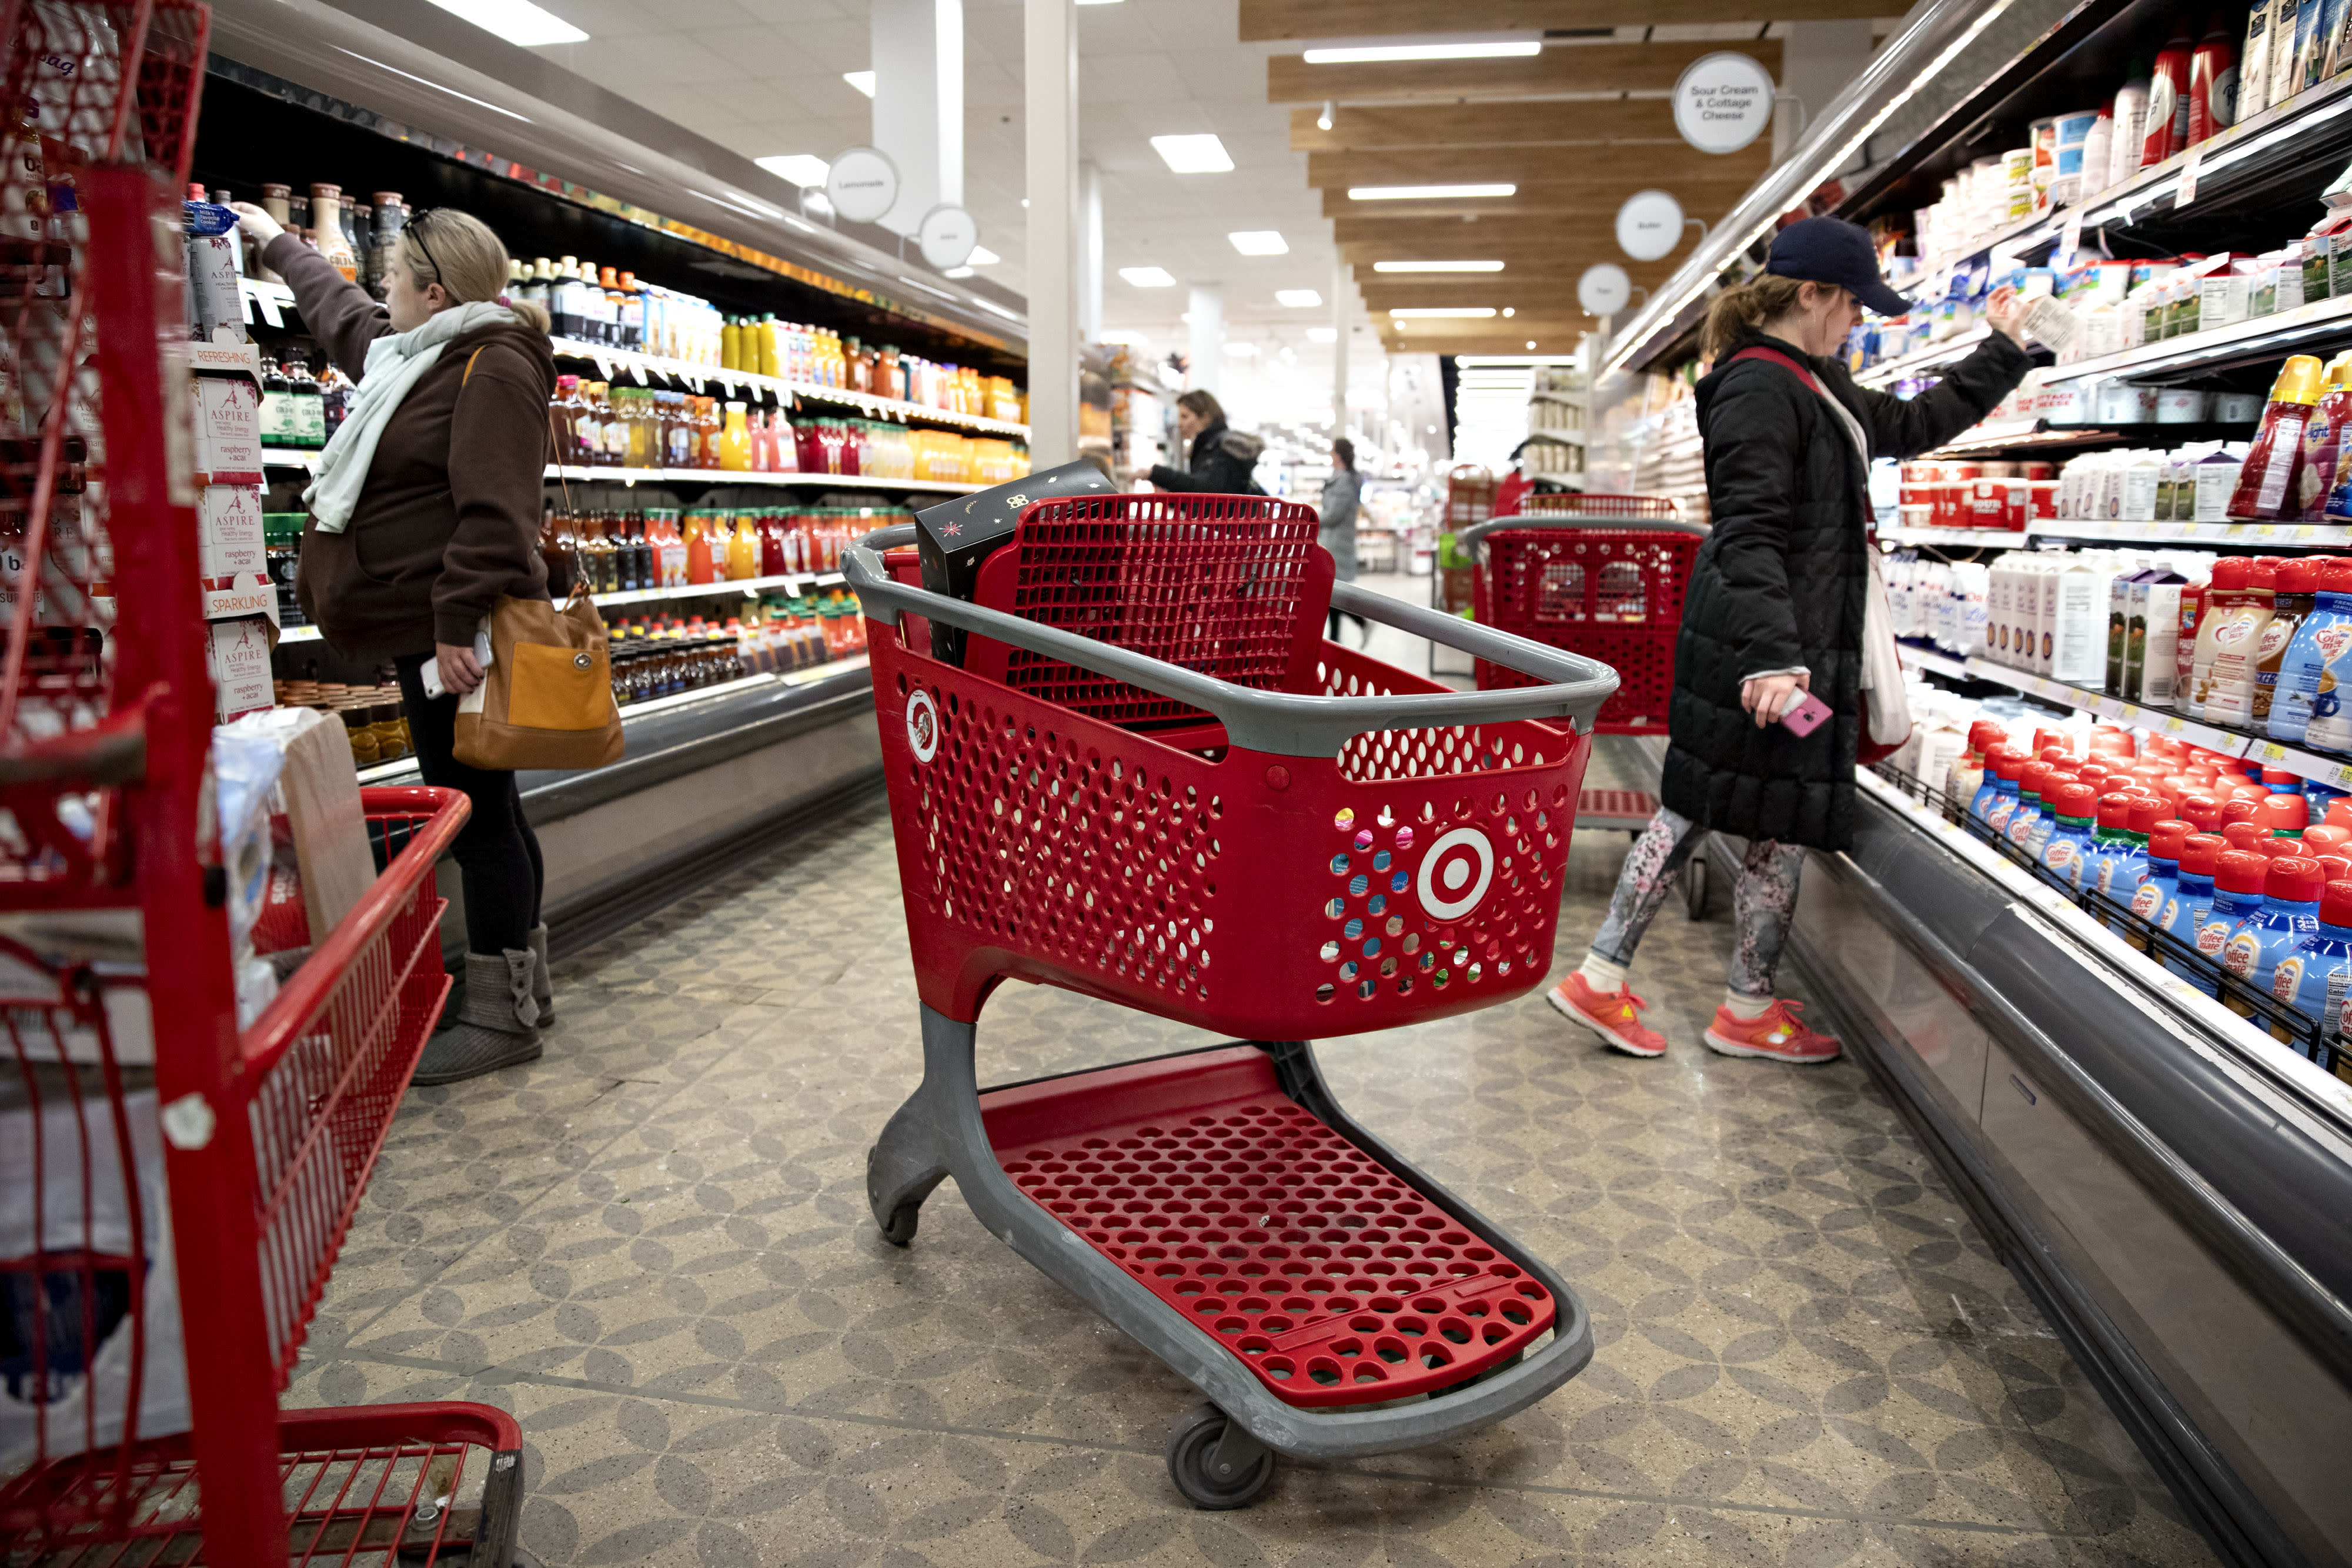 Americans are dining out again. Target wants to lure them back to the kitchen with grocery deals